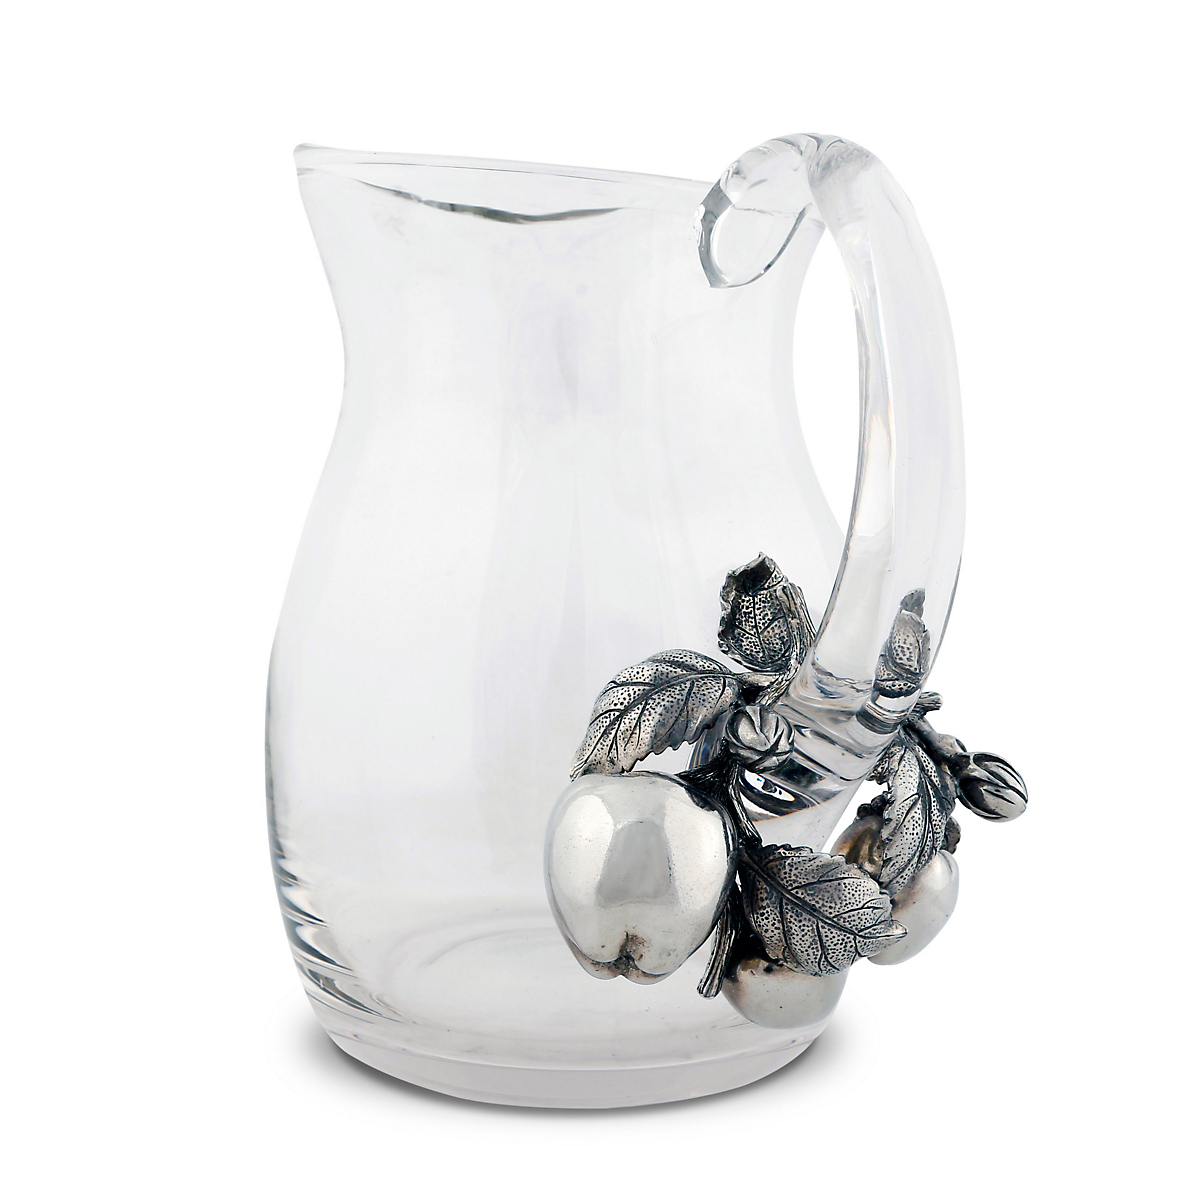 Vagabond House Apple Pitcher